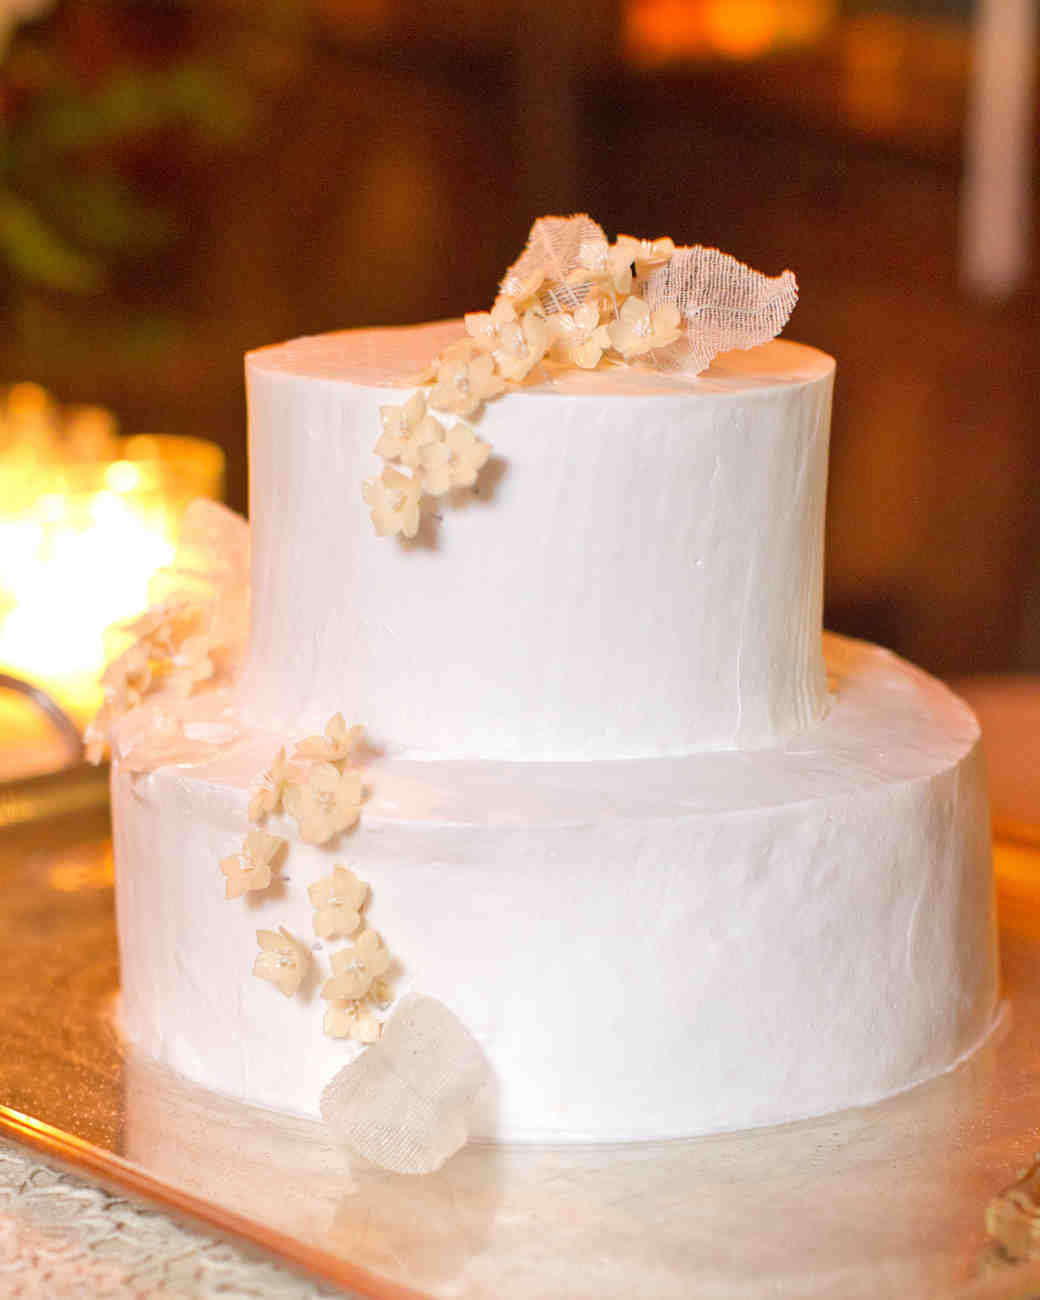 Small White Cake with Sugar Jasmine Flowers